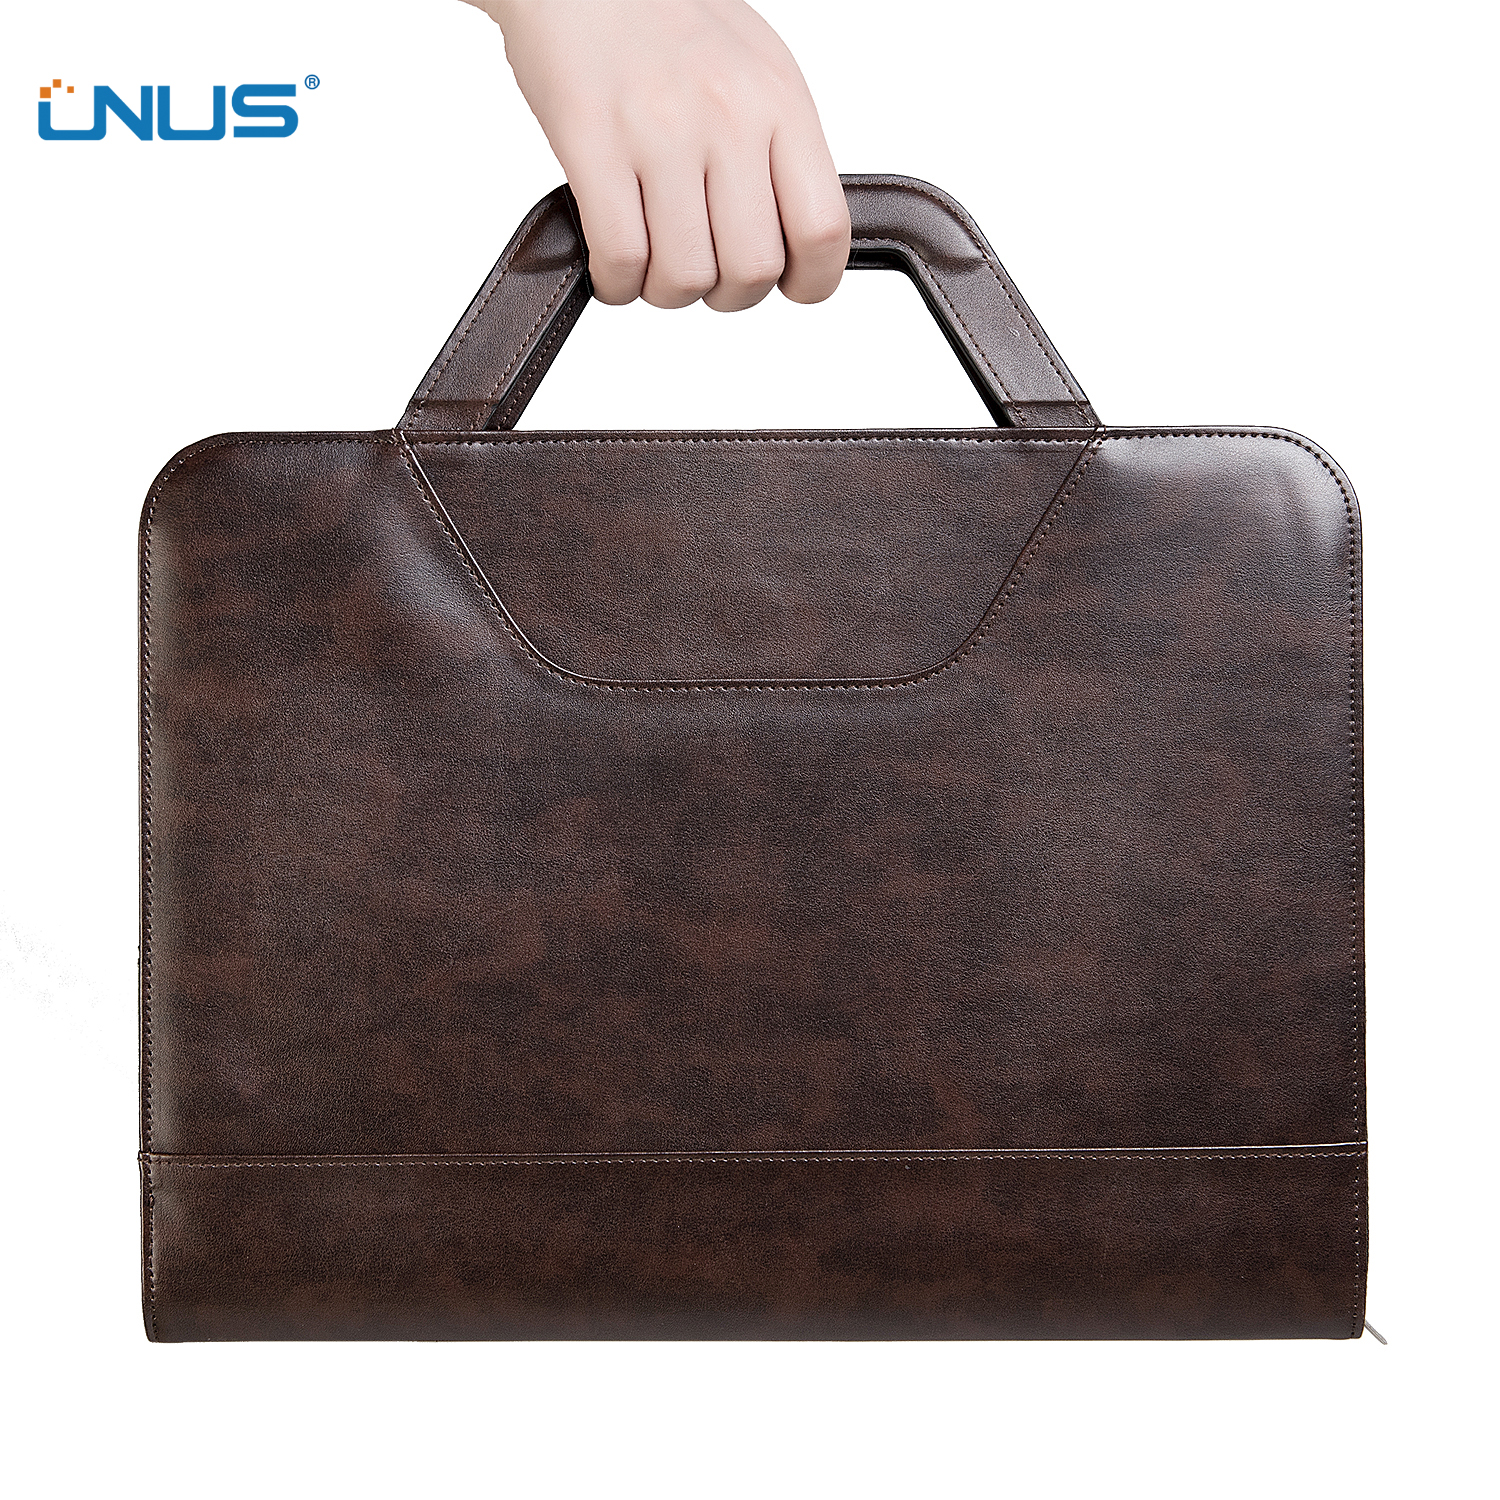 Portable Leather Portfolio Case with Carrying Handle